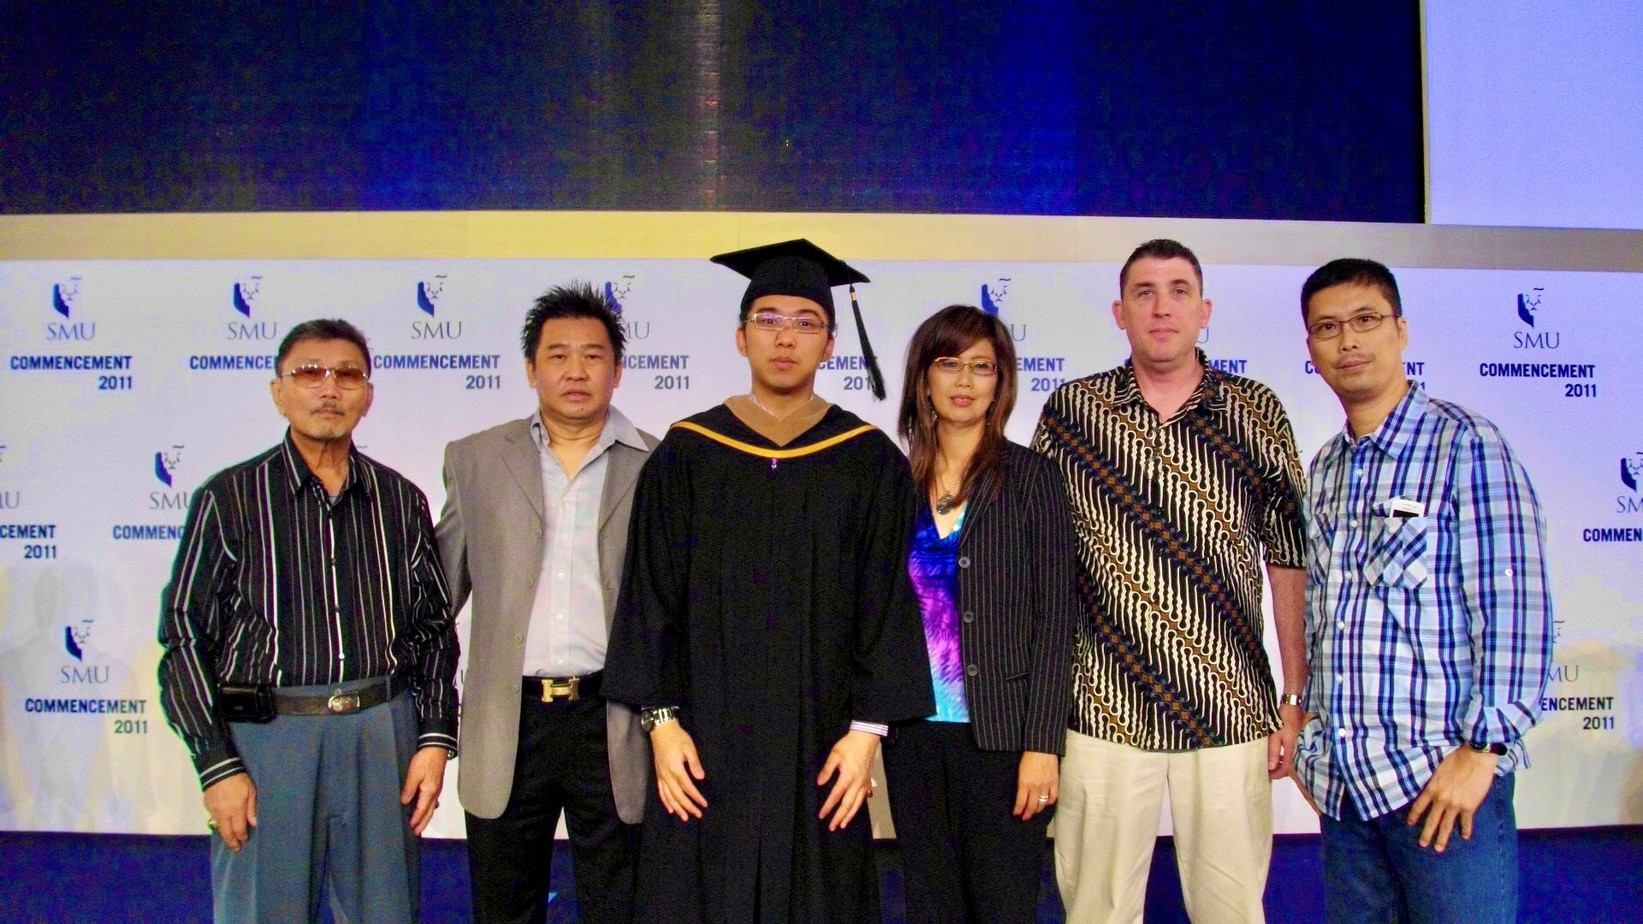 Kenneth and his family smiled together during his graduation from bachelor's program at Singapore Management University in 2011.